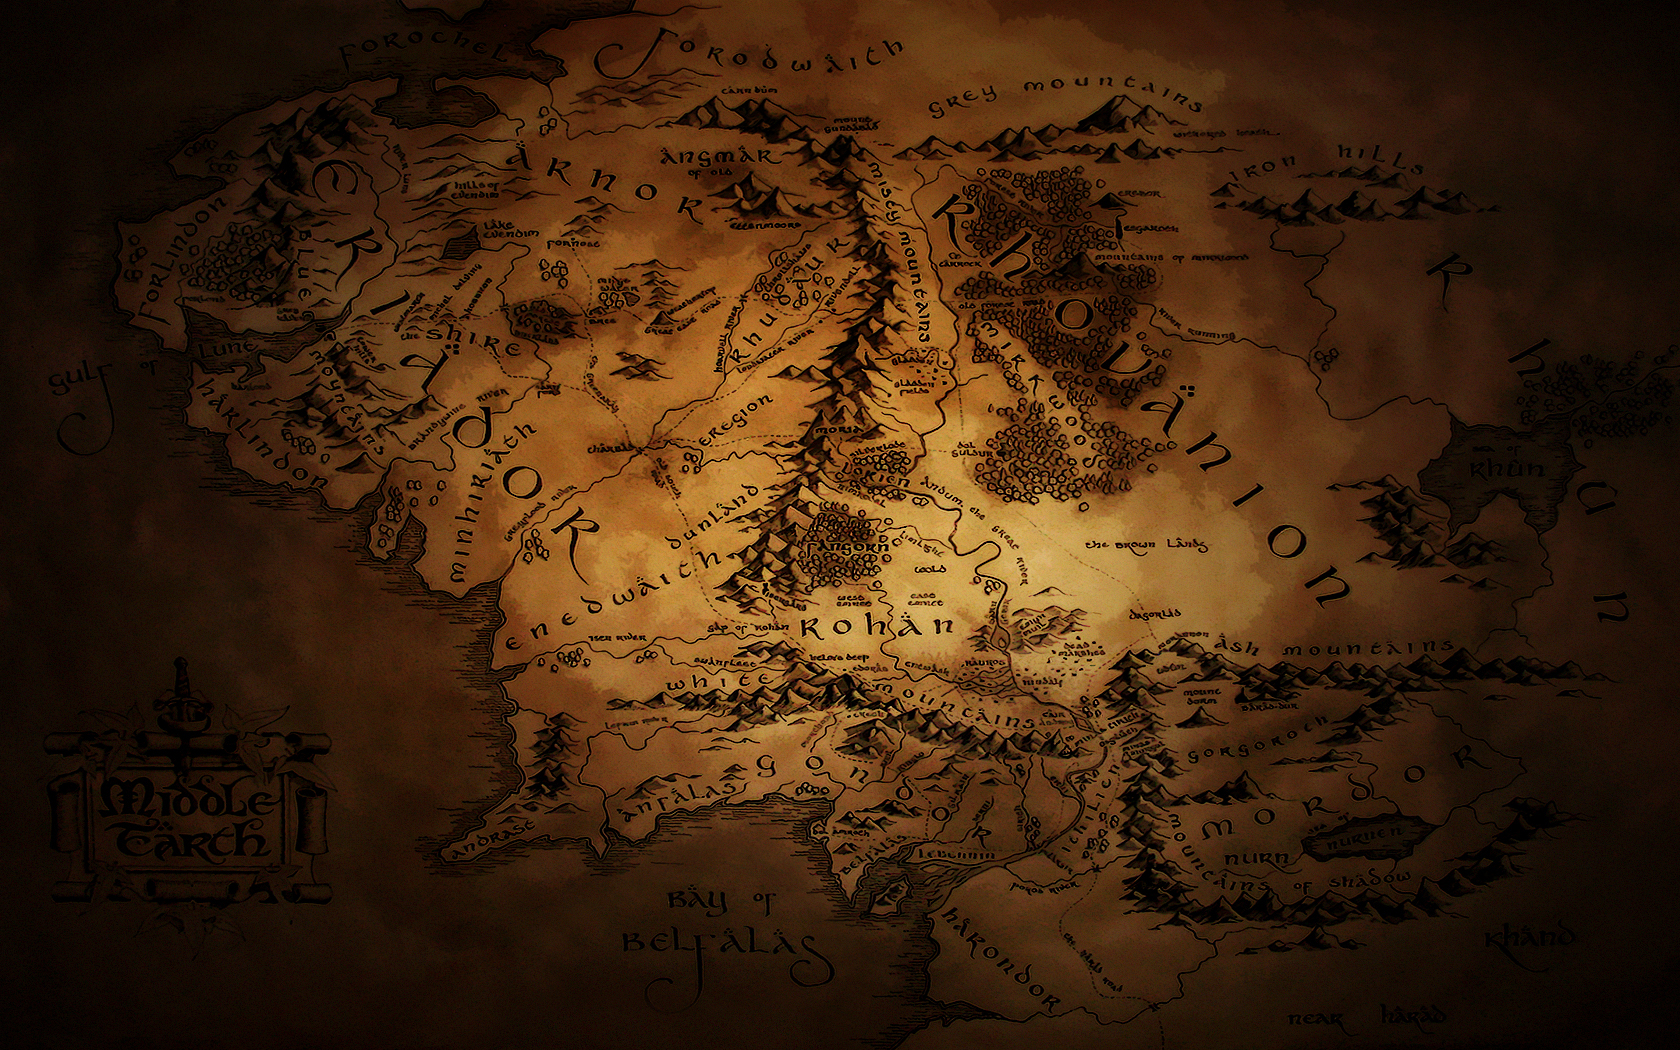 Maps Update 32002400 The Middle Earth Map Map of Middle Earth – Lord of the Rings Map of Middle Earth